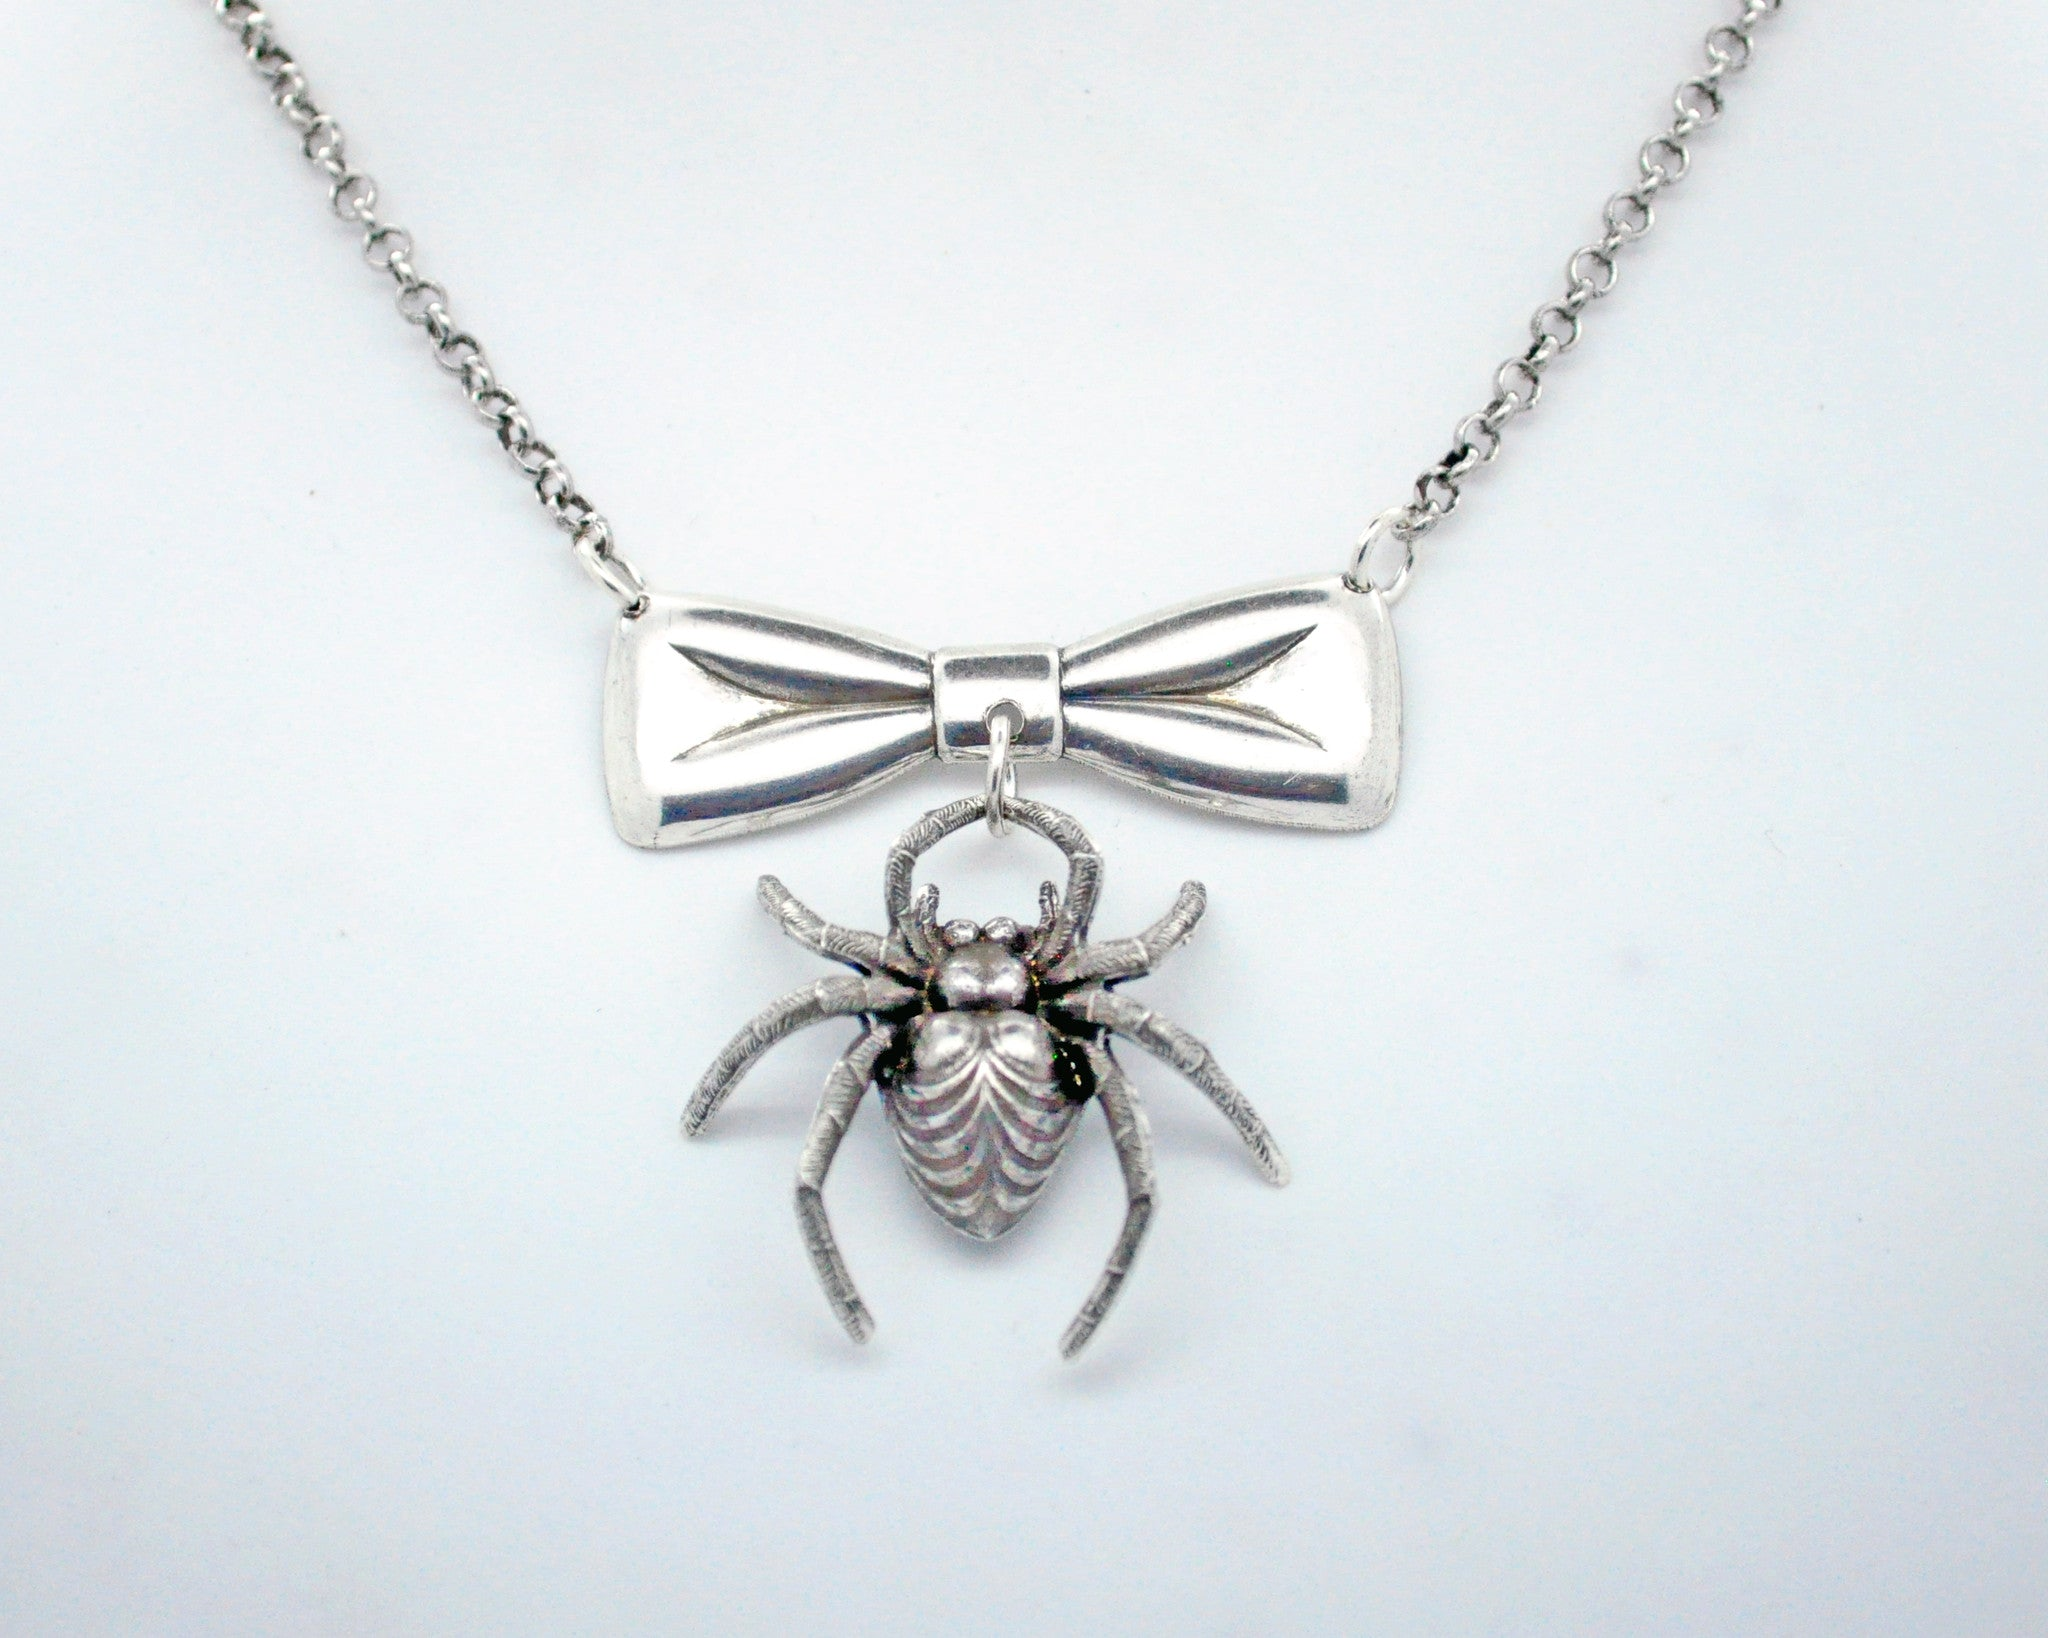 Bow and Spider Necklace